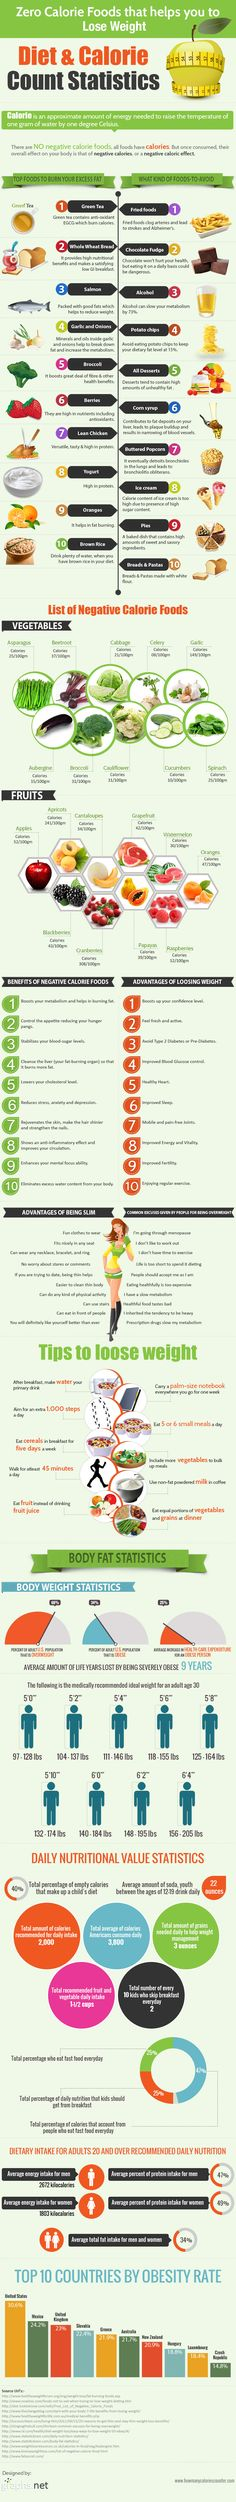 "Tips to Lose Weight - ""Diet and Calorie"" - ""Lose Weight With These #ZeroCalorie Foods 